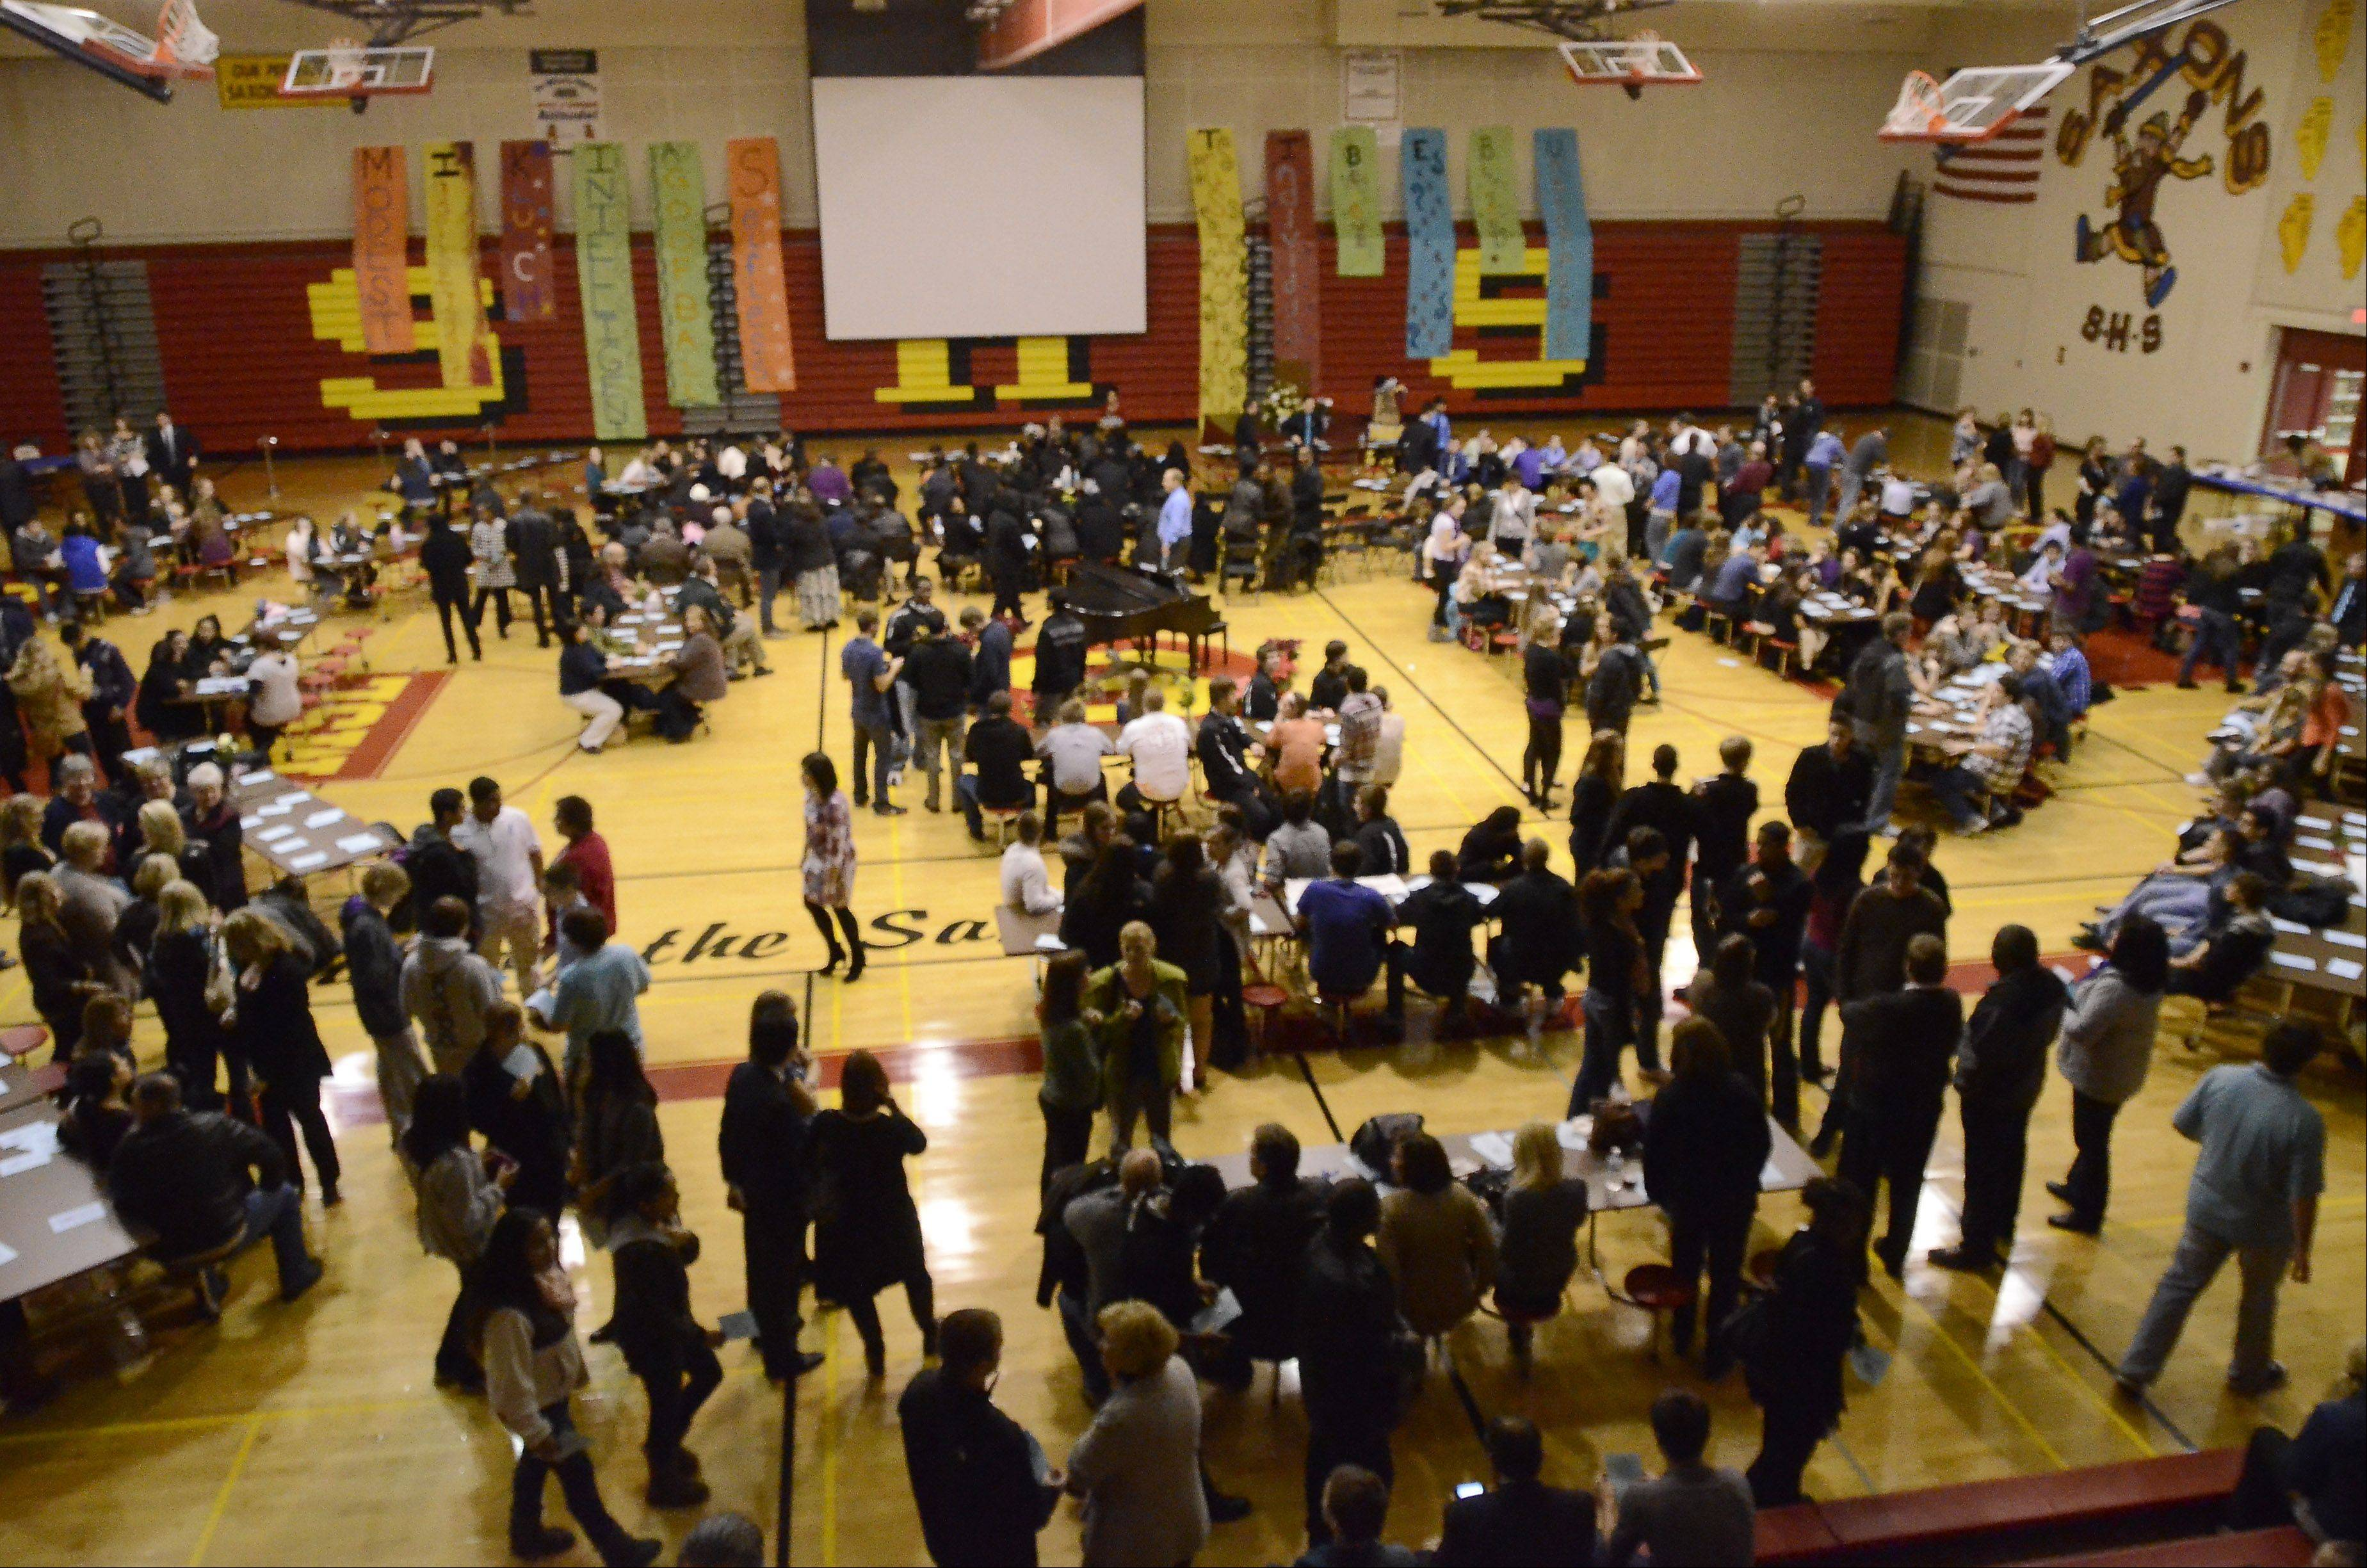 The Schaumburg High School gym fills with family and classmates of student Mikias Tibebu at a memorial service in his honor Thursday night.